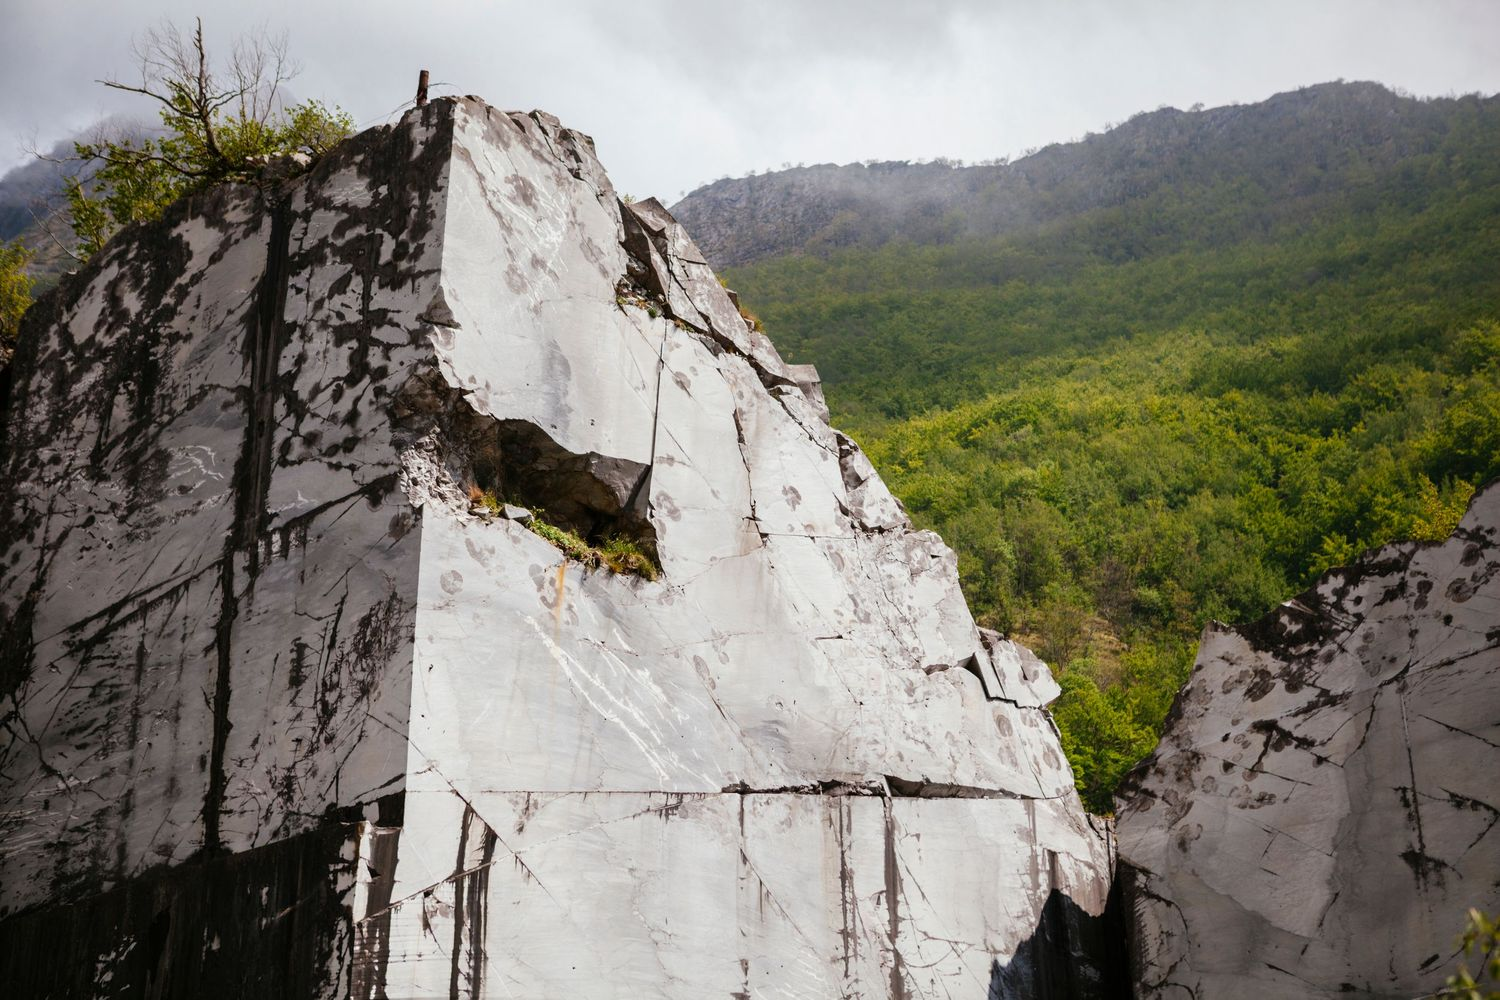 dissed marble mine in Apuan Alps Garfagnana Tuscany Italy